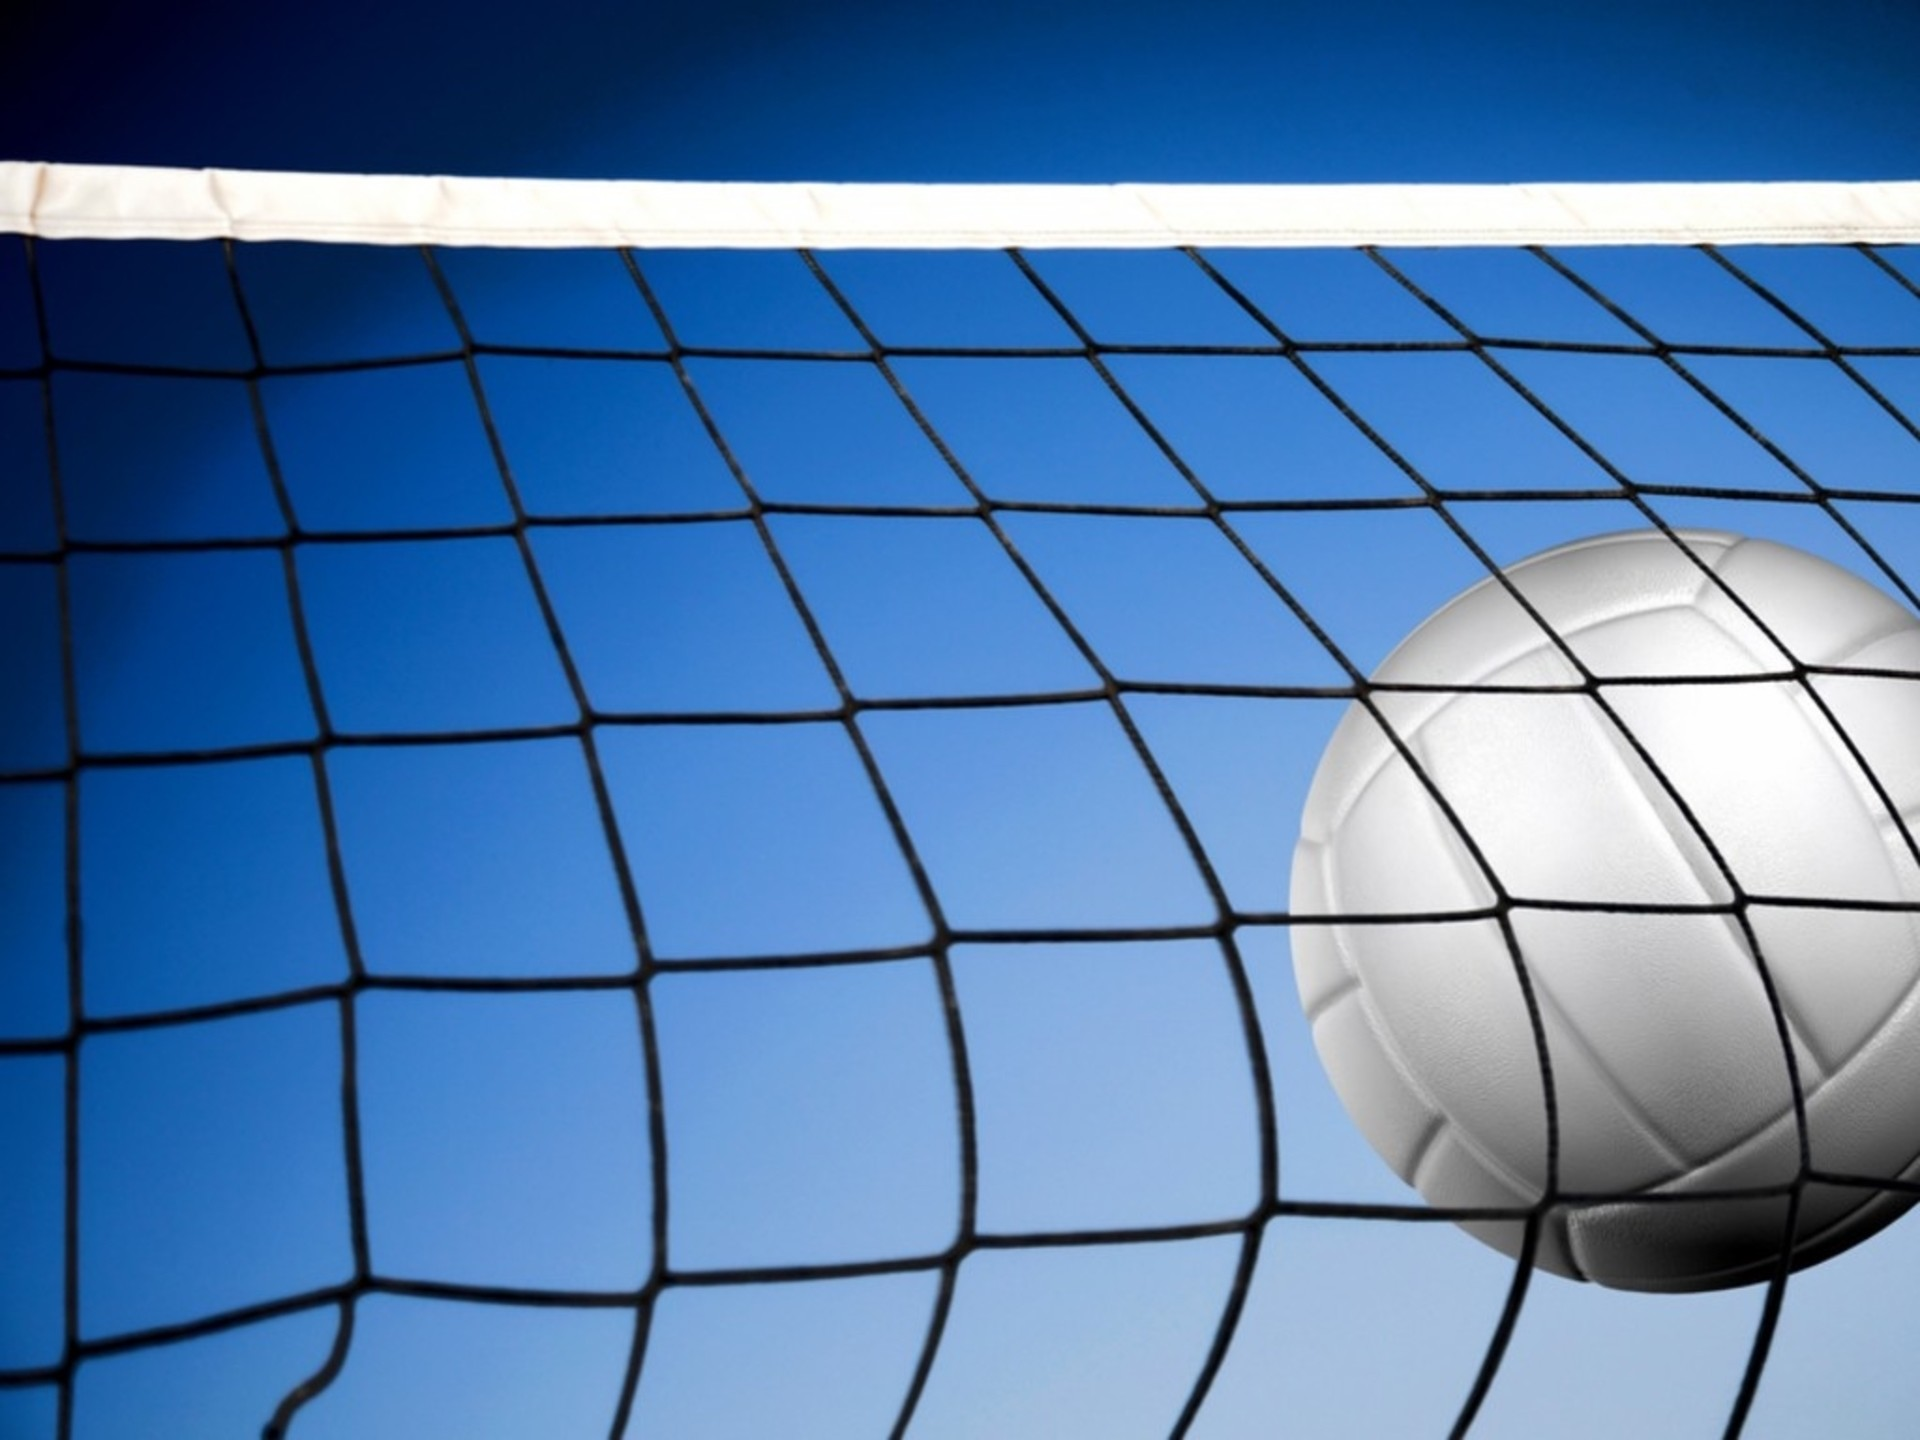 Volleyball Wallpapers Android Apps on Google Play | HD Wallpapers |  Pinterest | Volleyball wallpaper, Hd wallpaper and Wallpaper